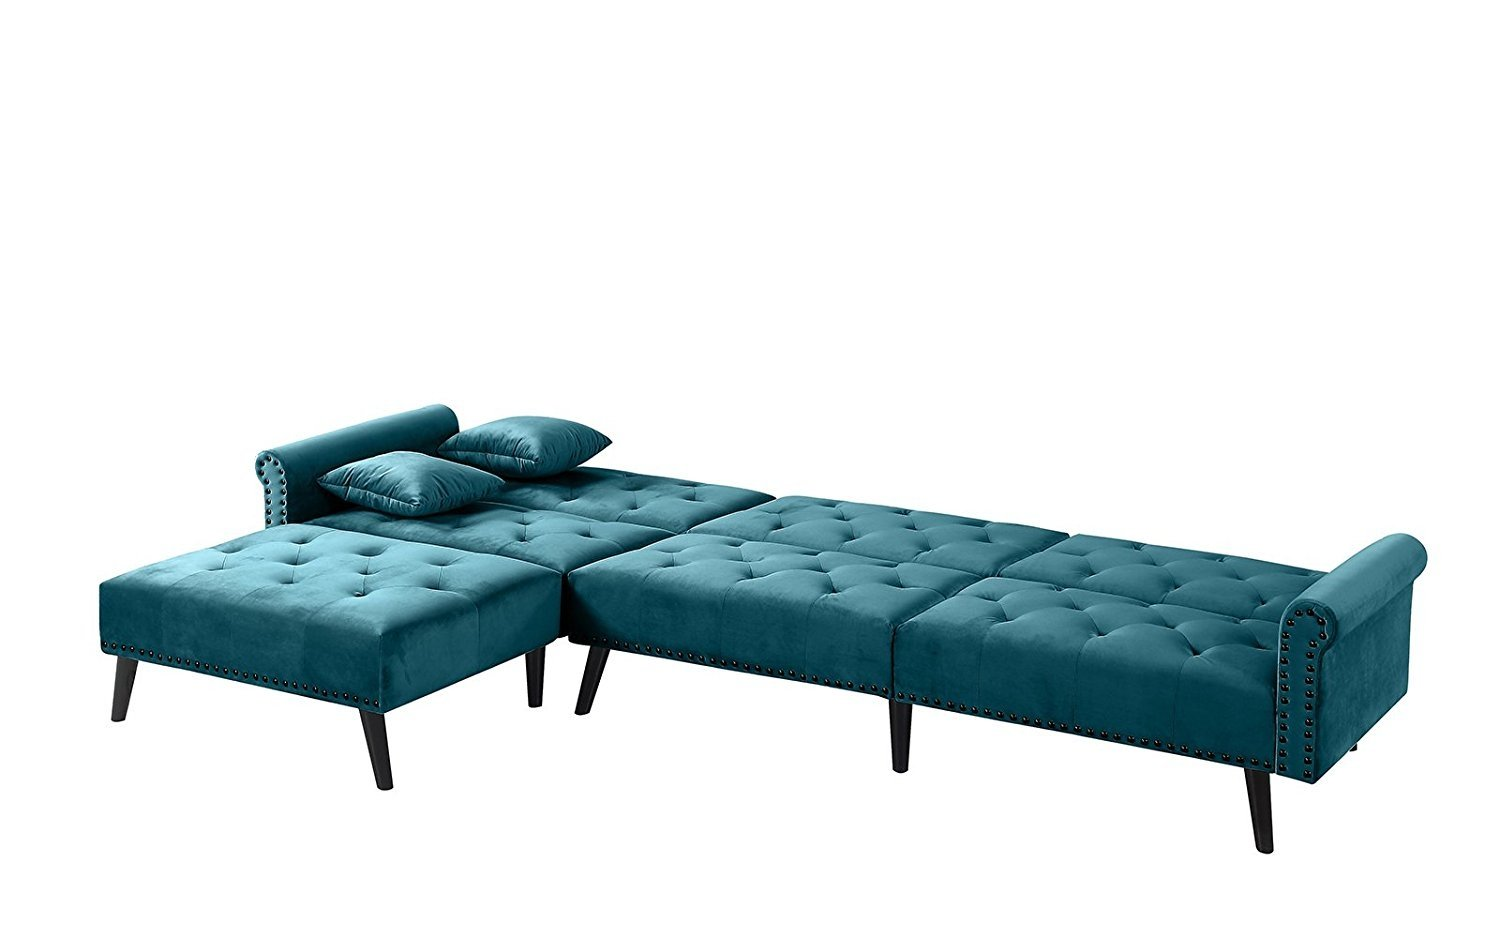 Details about Mid Century Style Velvet Sleeper Futon Couch, Living Room L  Shape Sofa, Teal